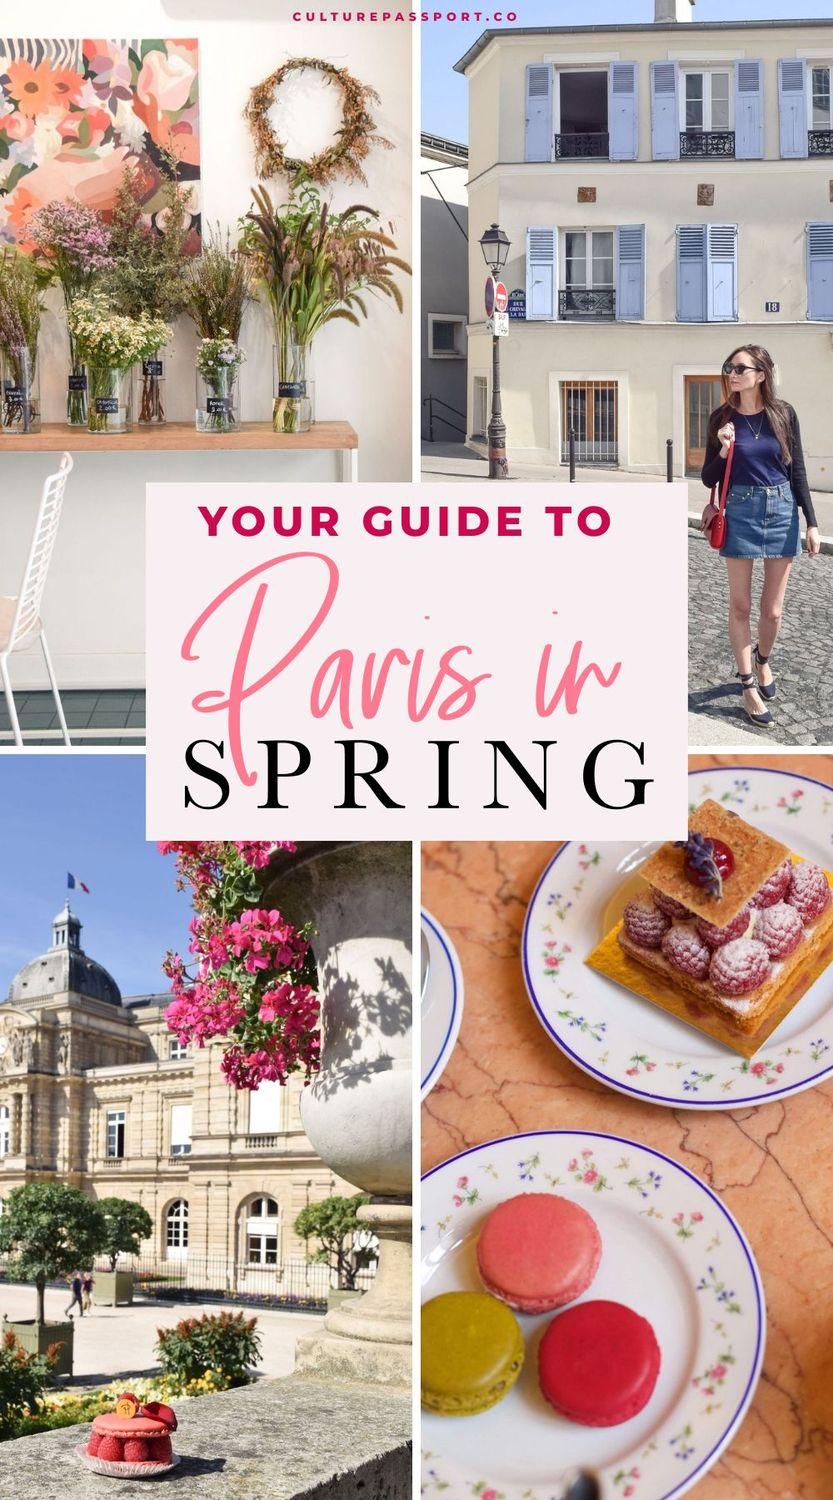 Your Guide To Paris In Spring! Everything you need to know before spending spring in Paris. #parisguide #paristips #springtravel